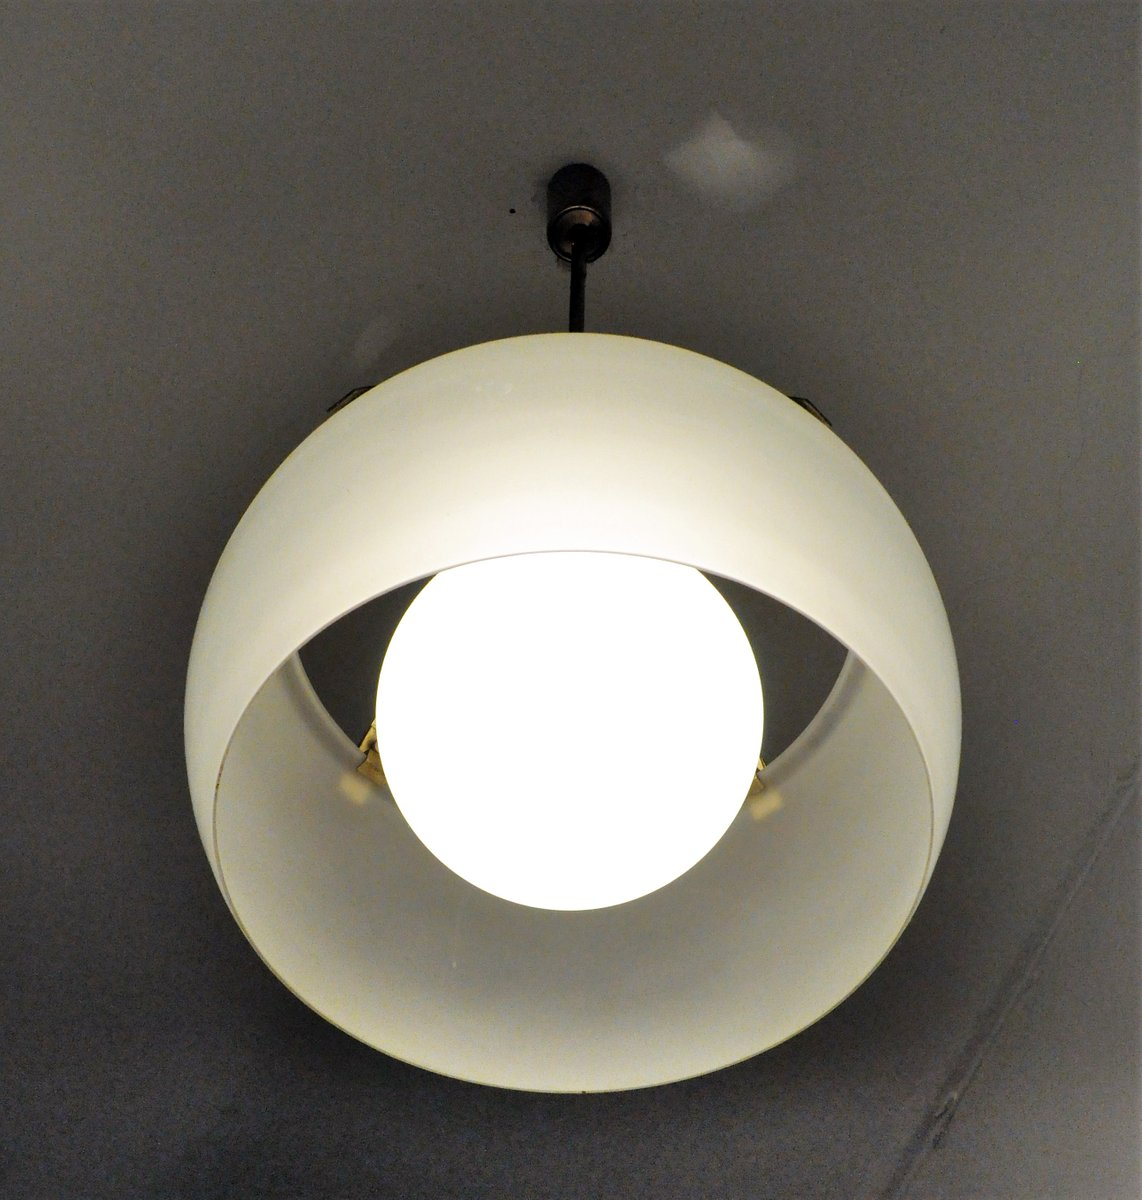 Omega pendant light by vico magistretti for artemide 1960s for sale price per piece mozeypictures Choice Image